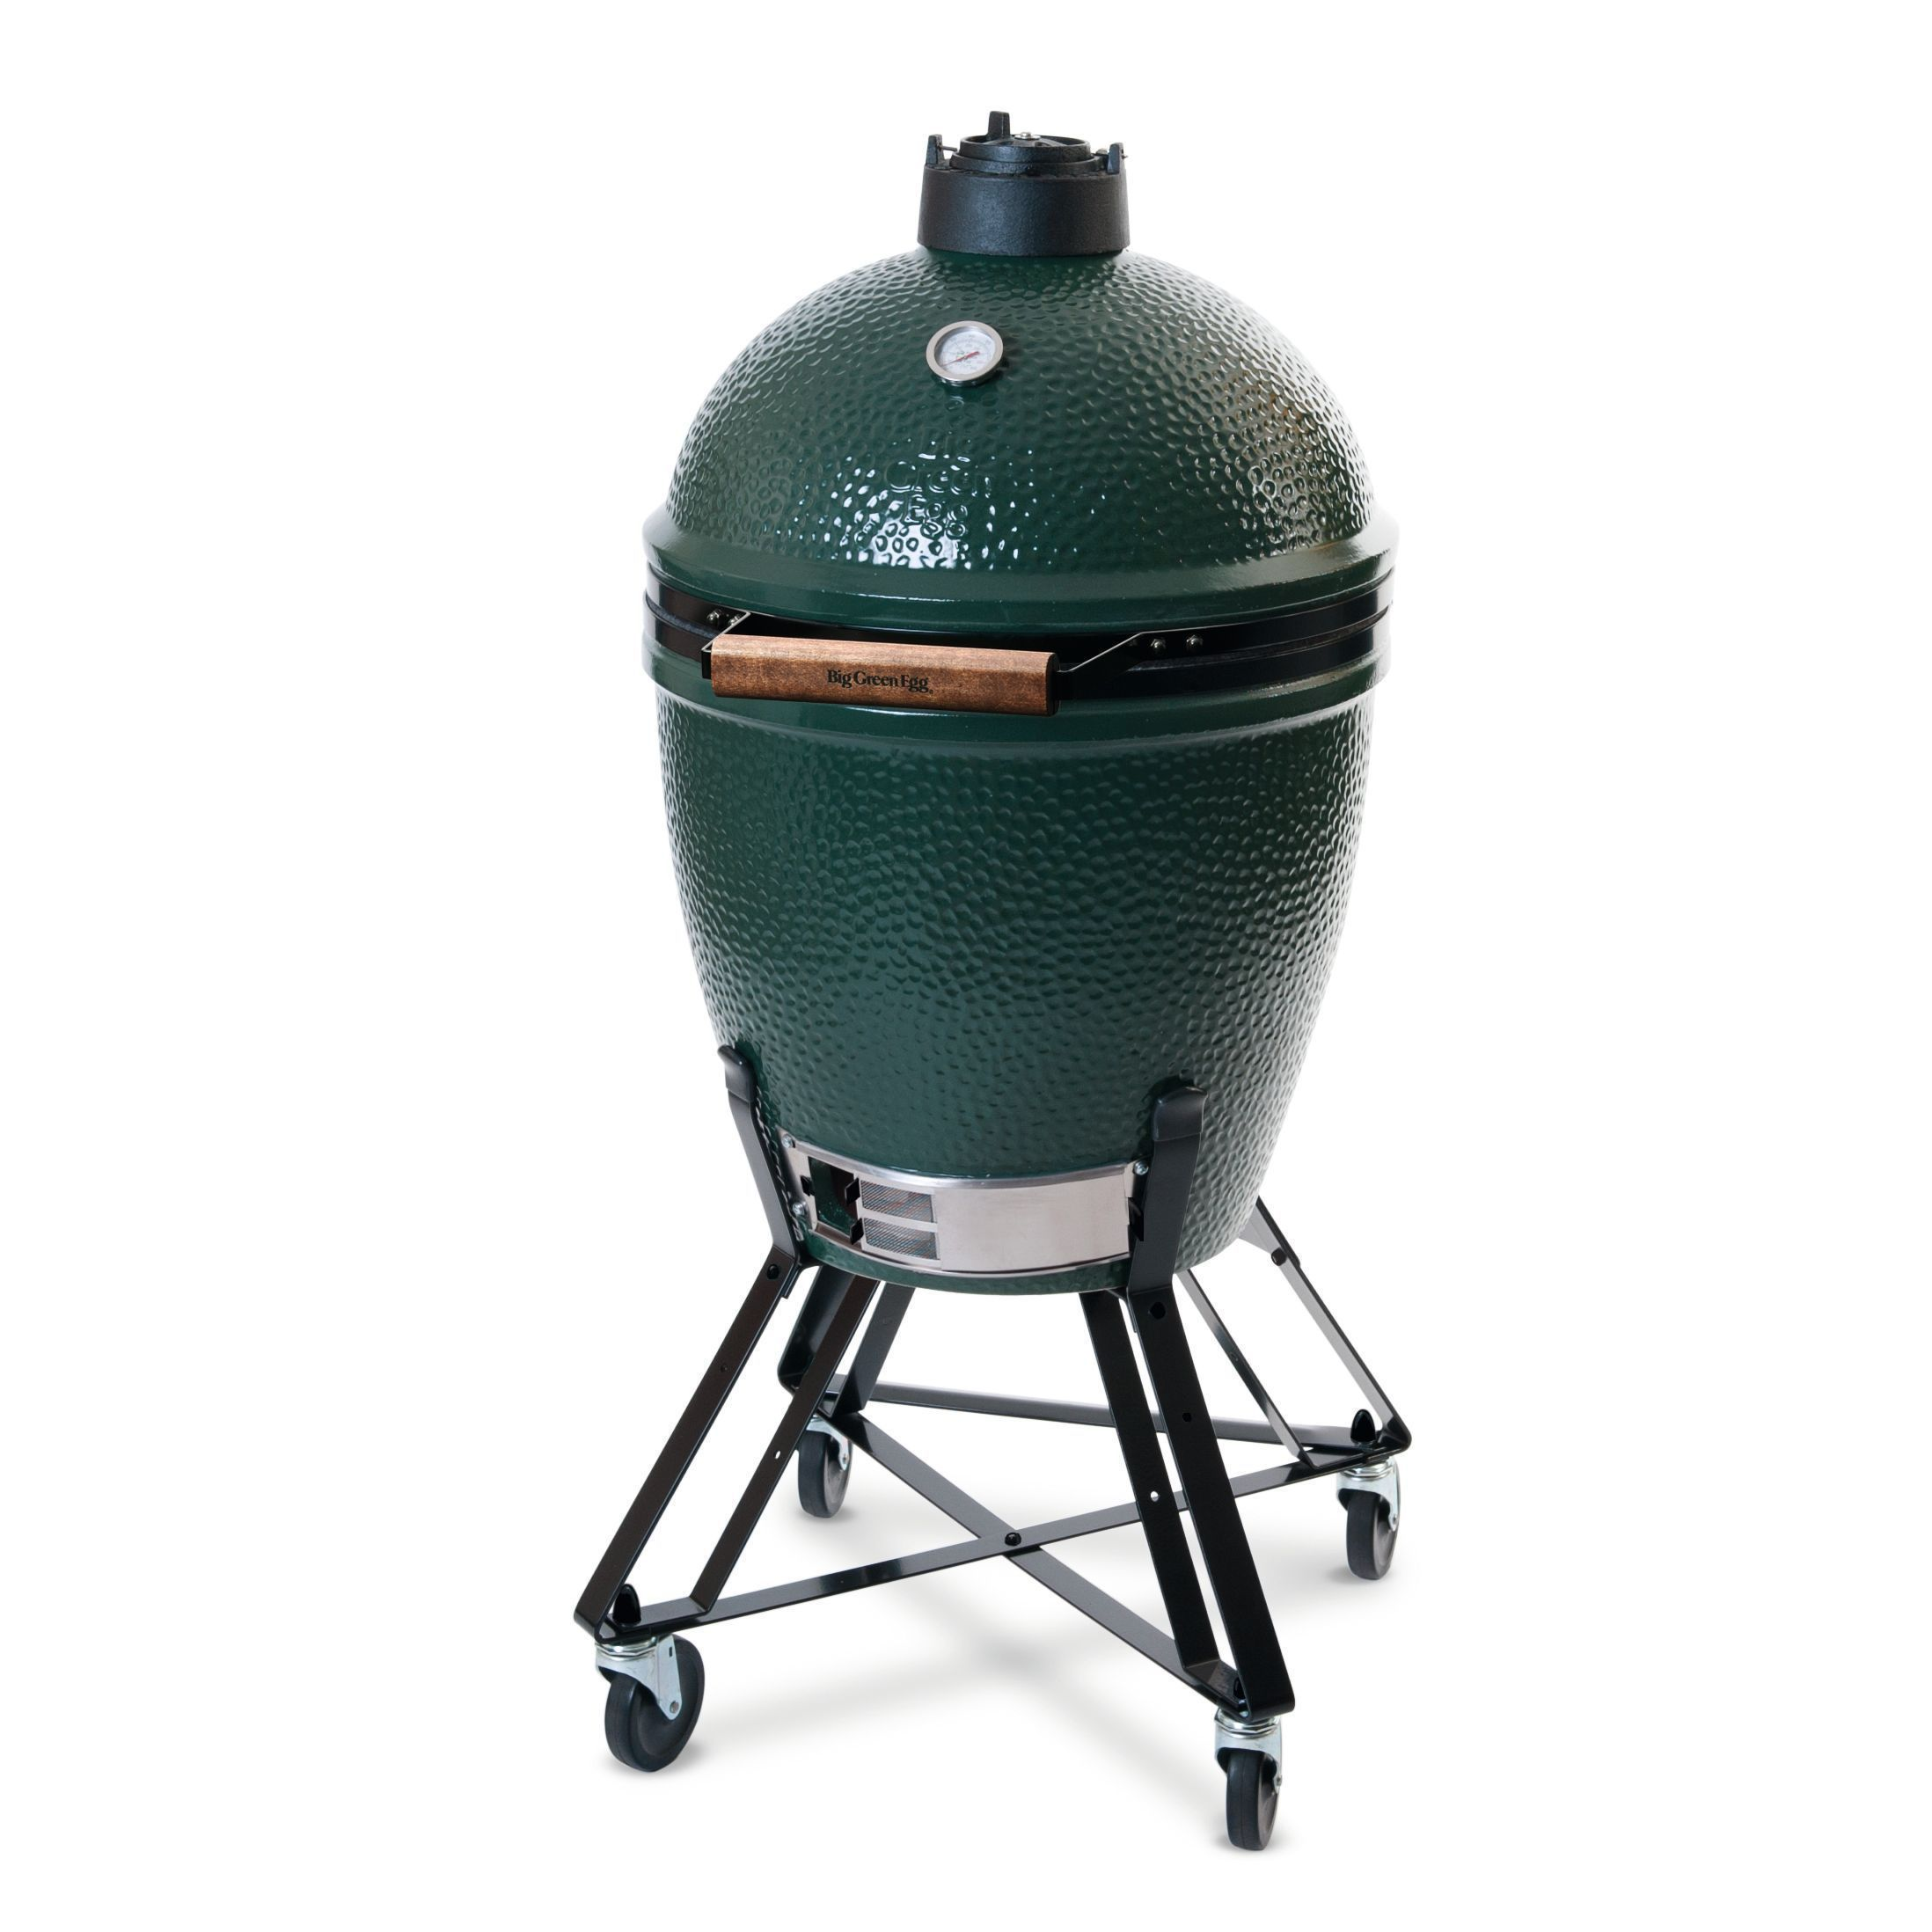 grill big green egg large. Black Bedroom Furniture Sets. Home Design Ideas